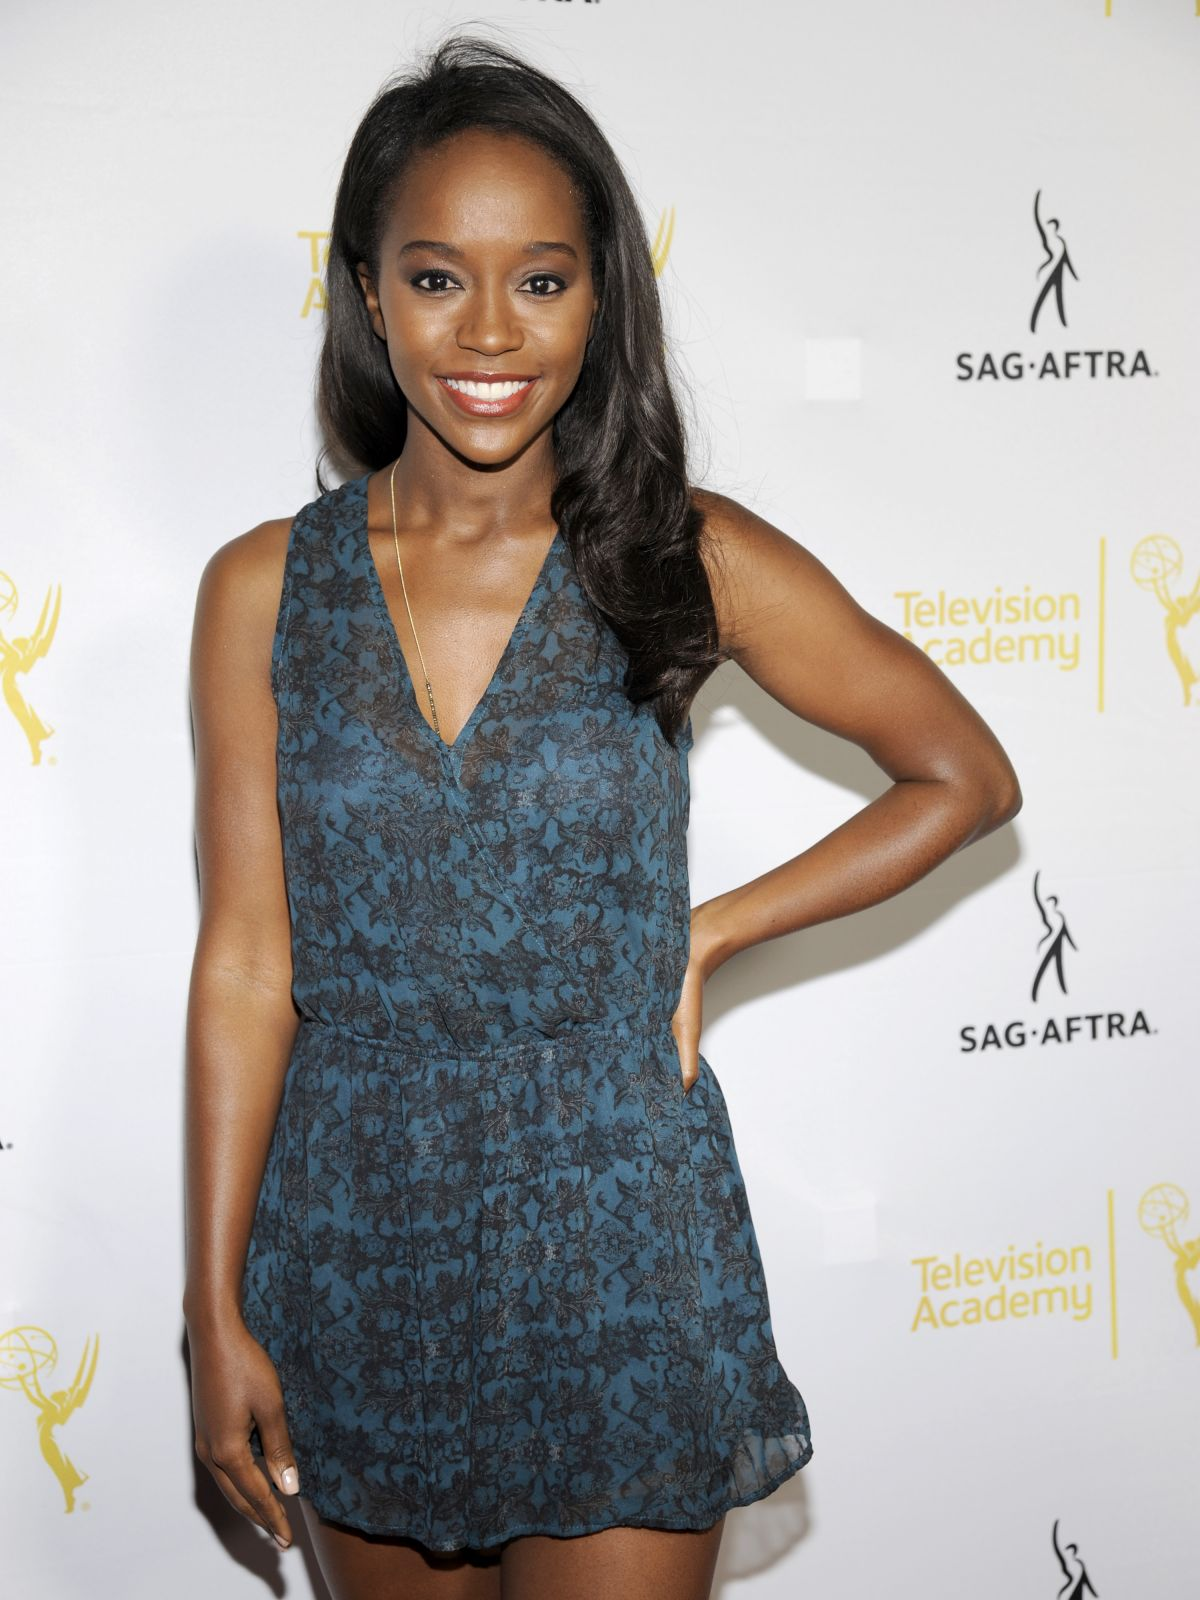 AJA NAOMI KING at Emmy Awards Dynamic and Diverse Nominee Reception